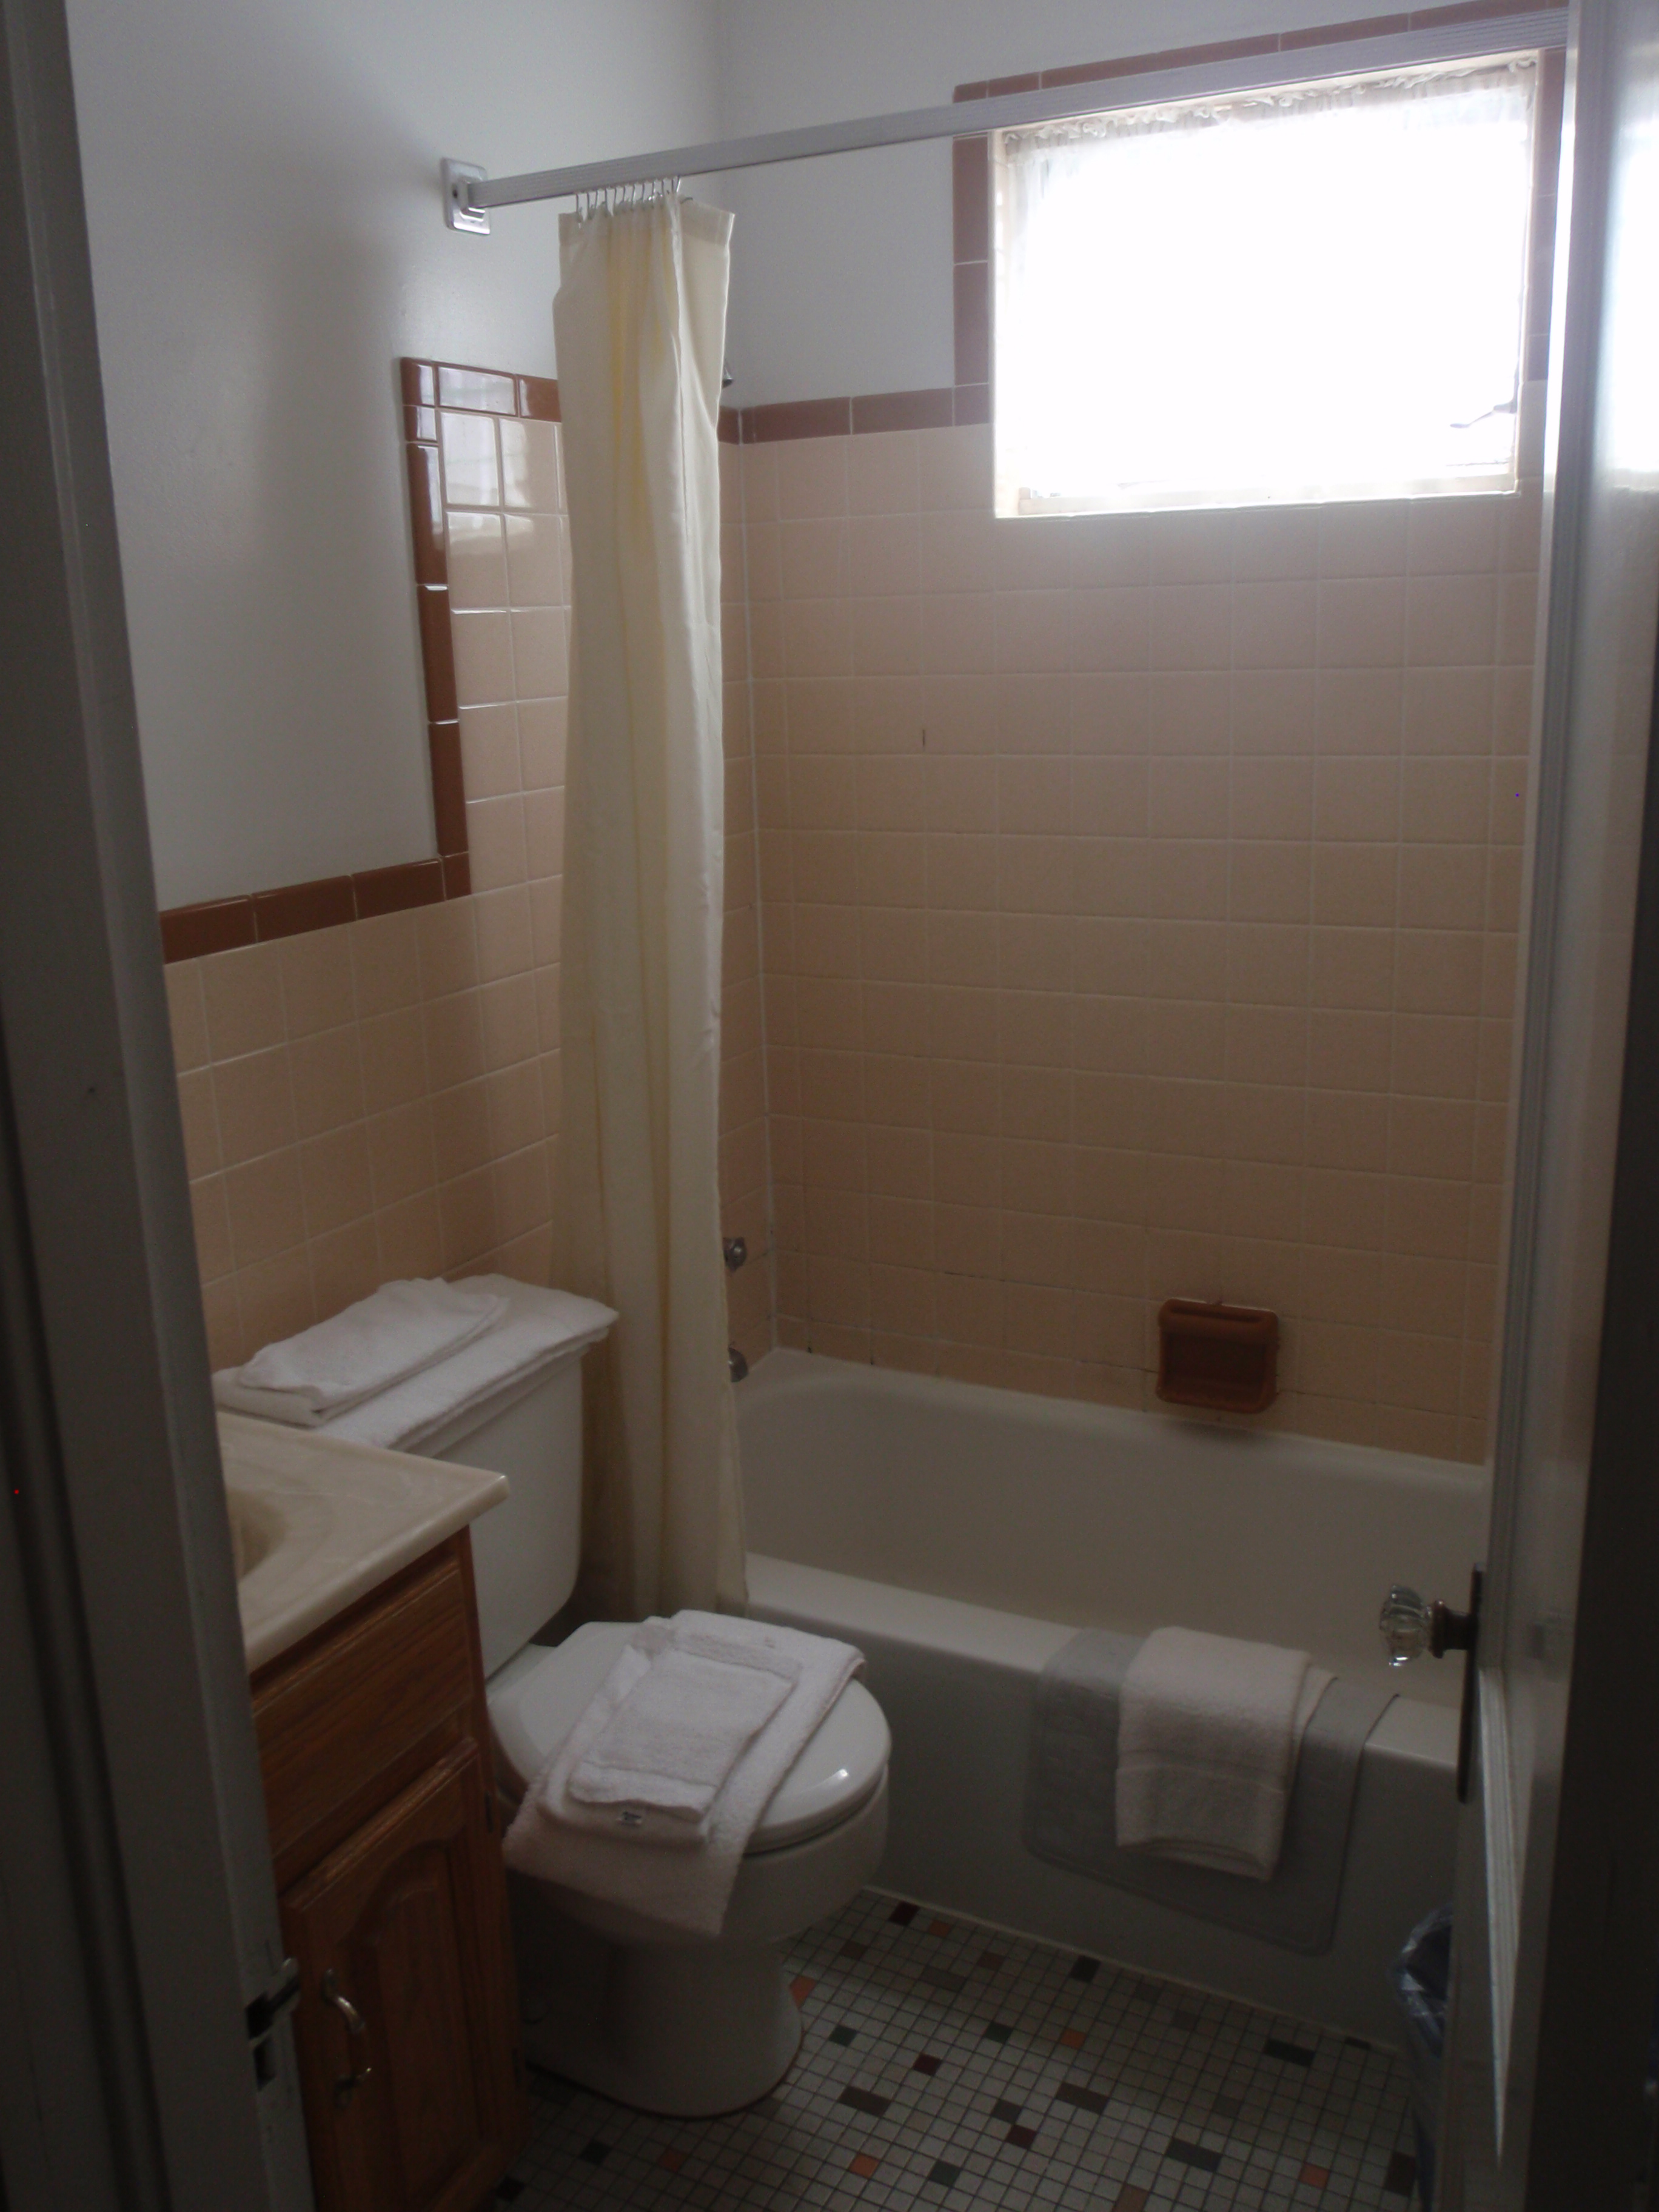 bathroom with tub/shower and sink/toilet